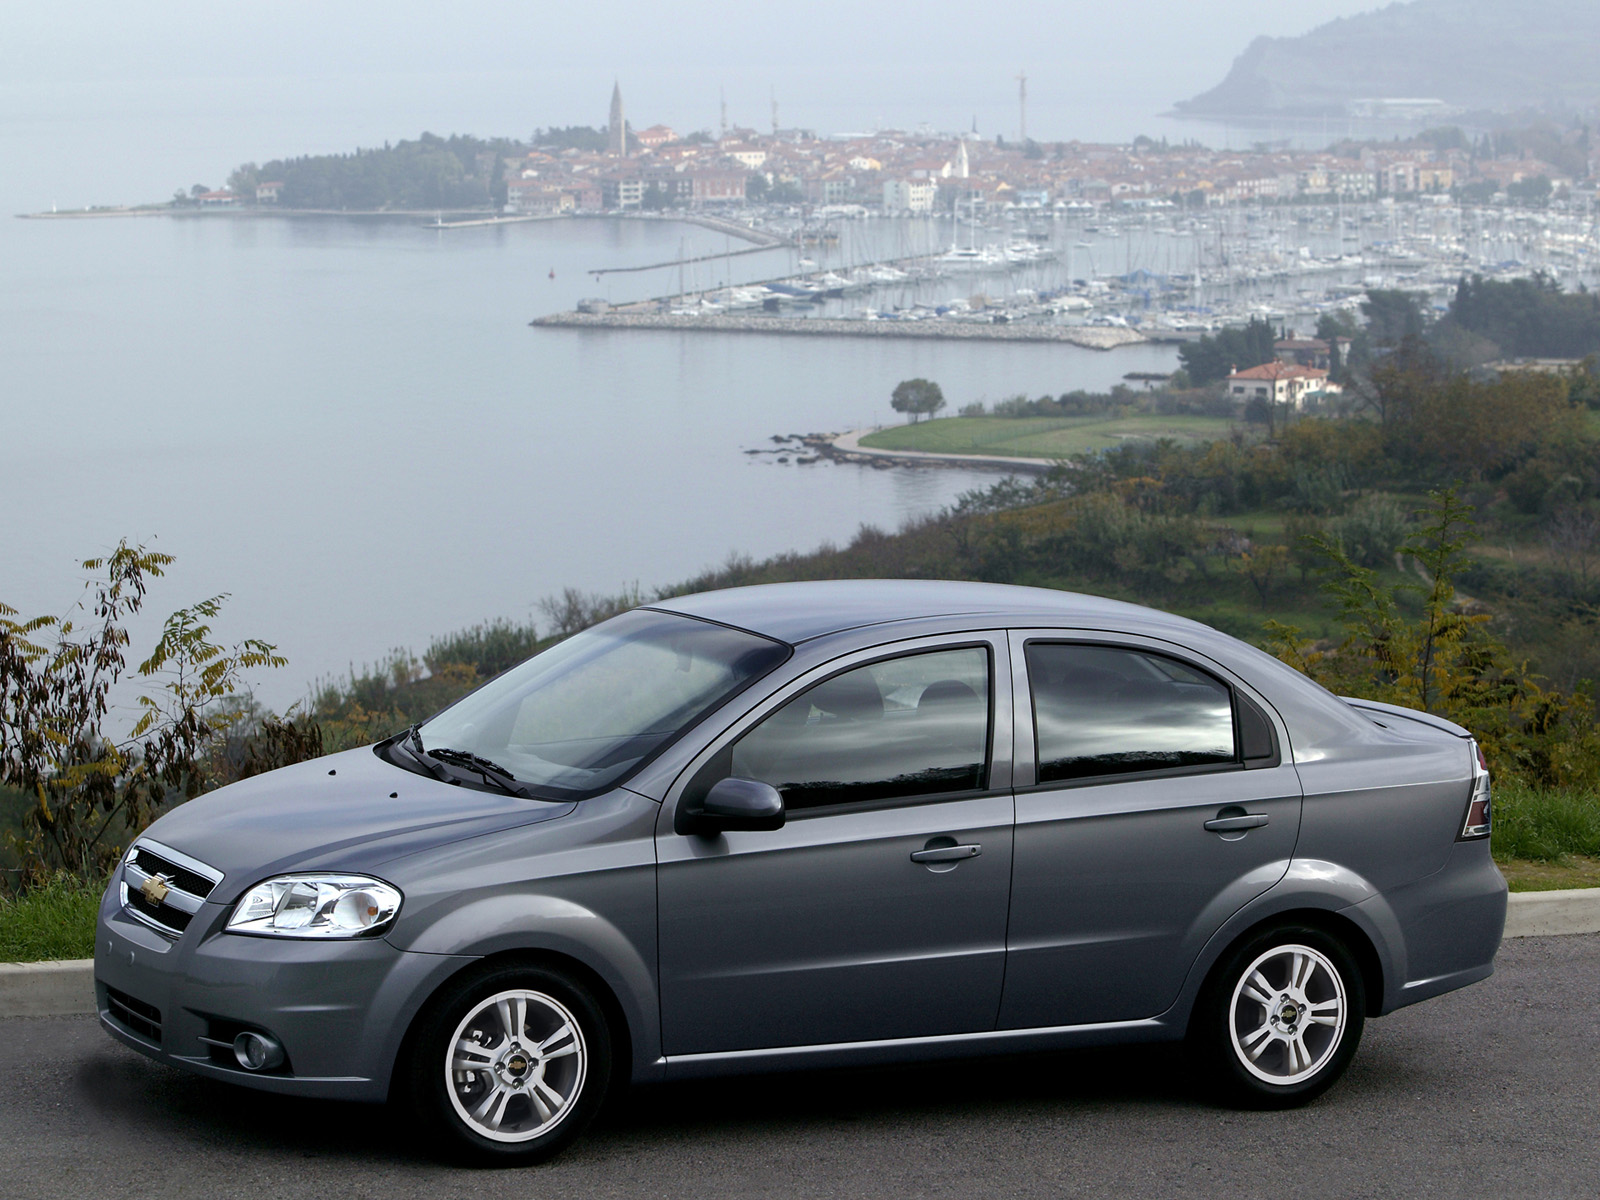 Chevrolet Aveo picture # 58478 | Chevrolet photo gallery | CarsBase